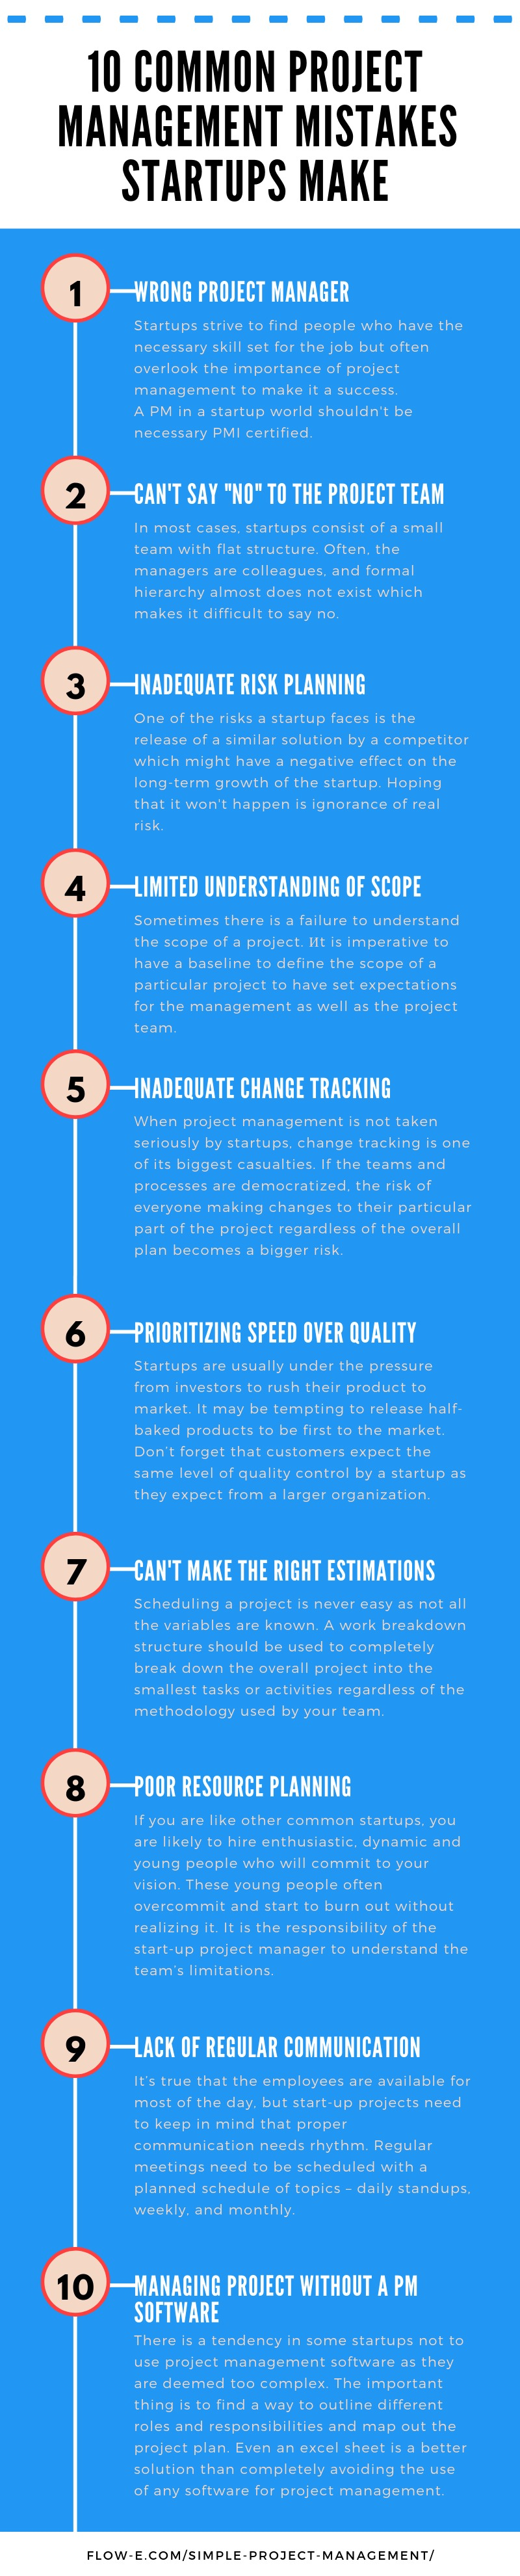 Simplified Startup Project Management Tools and Best Practices